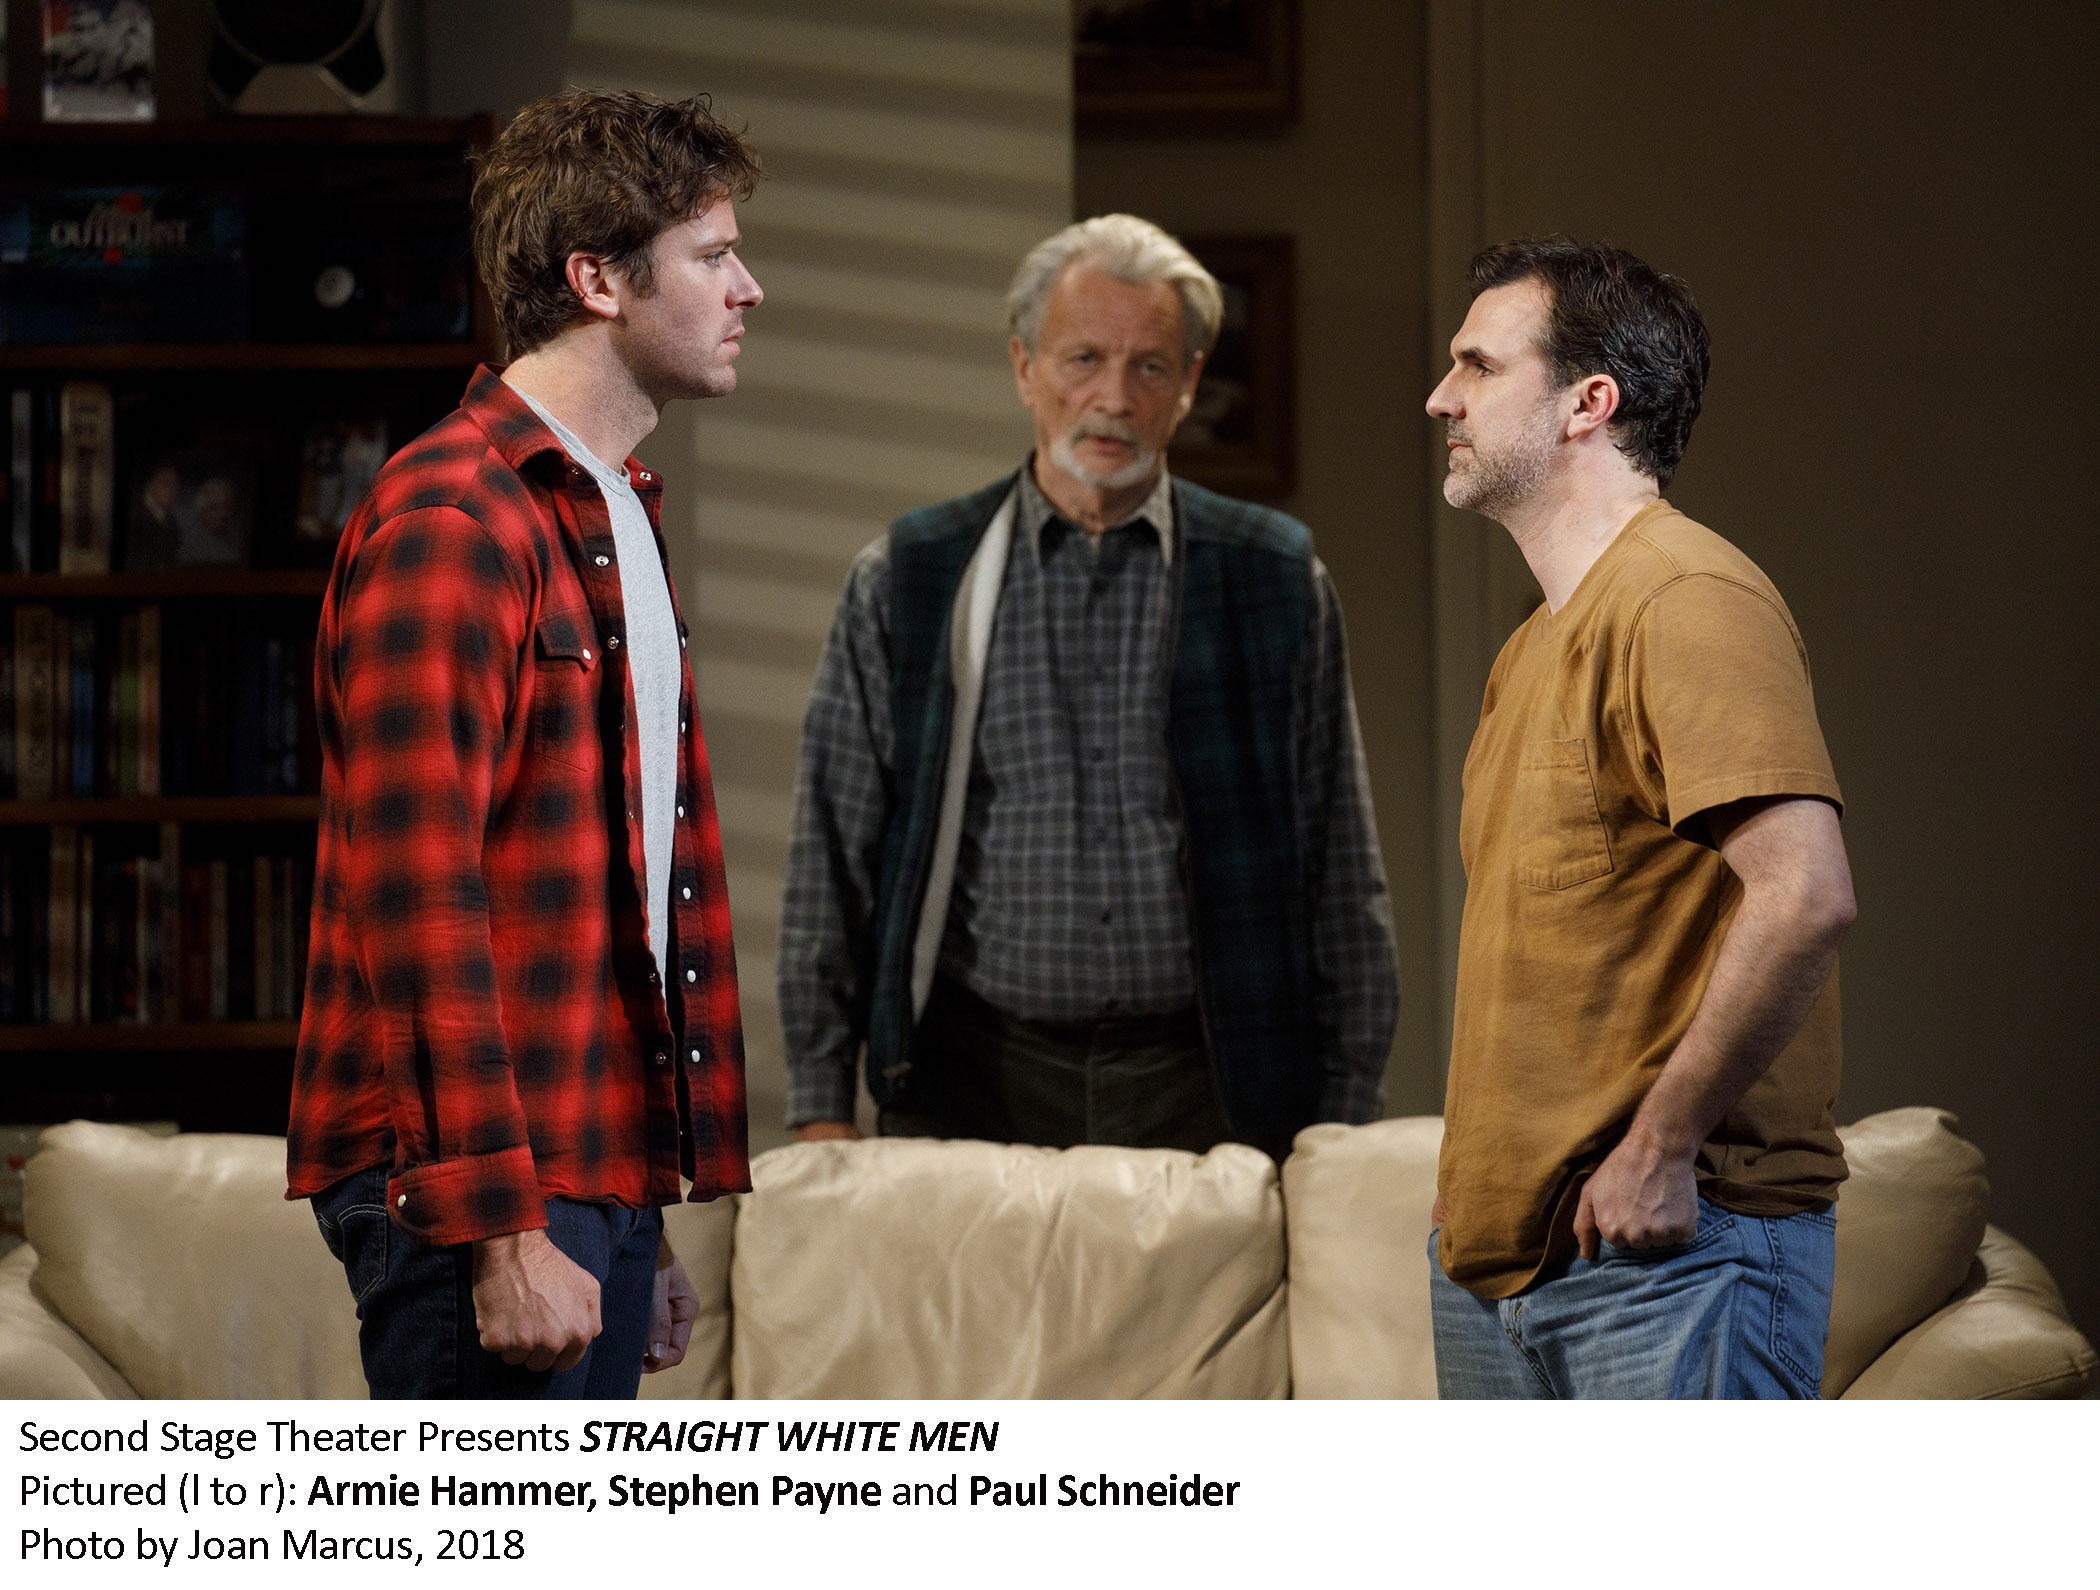 0159_Armie Hammer, Stephen Payne and Paul Schneider in STRAIGHT WHITE MEN, Photo by Joan Marcus, 2018.jpg